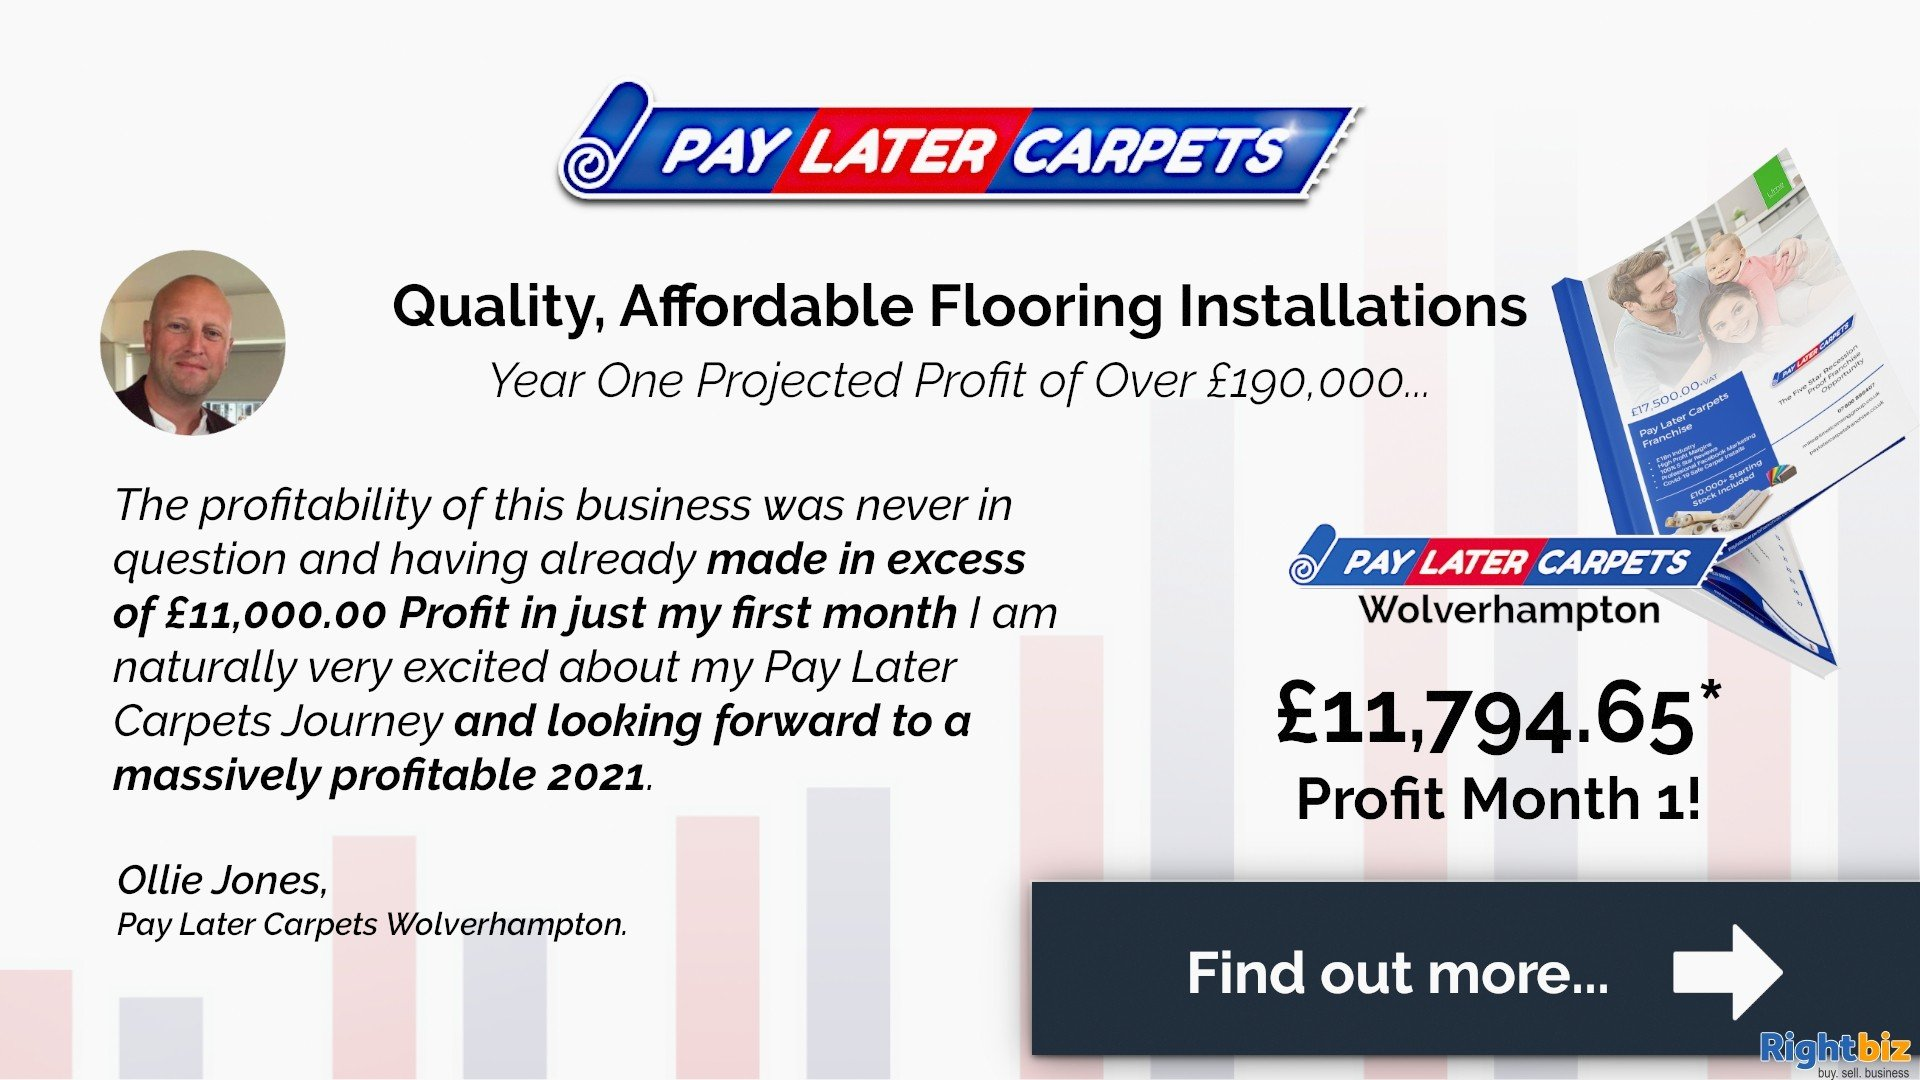 Pay Later Carpets Franchise Salisbury Our First Franchisee Made £11,000+ Profit in Month One - Image 1